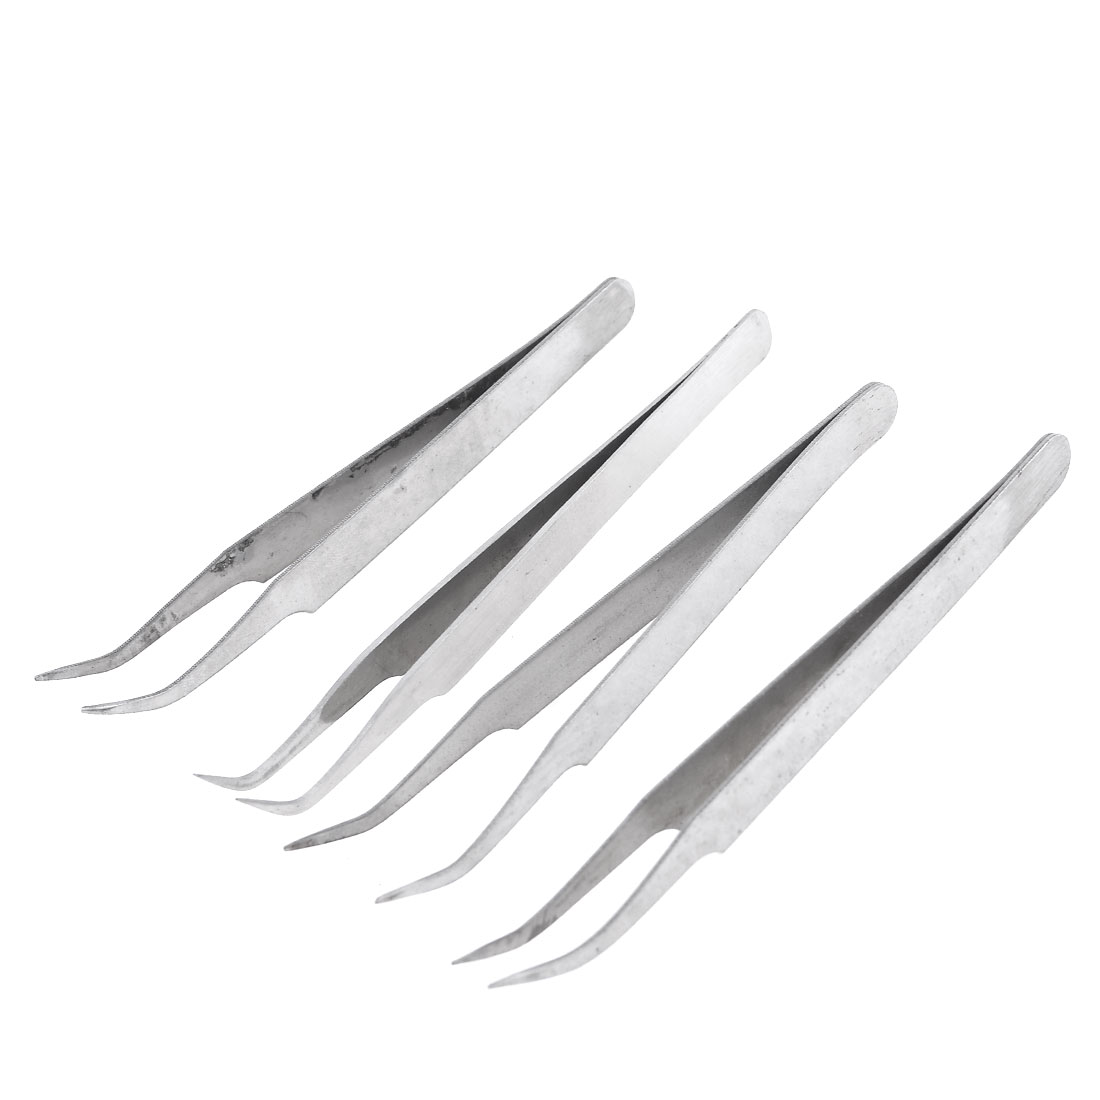 4 Pcs Silver Tone Bended Nose Pointed Stainless Steel Curved Tweezer 115mm